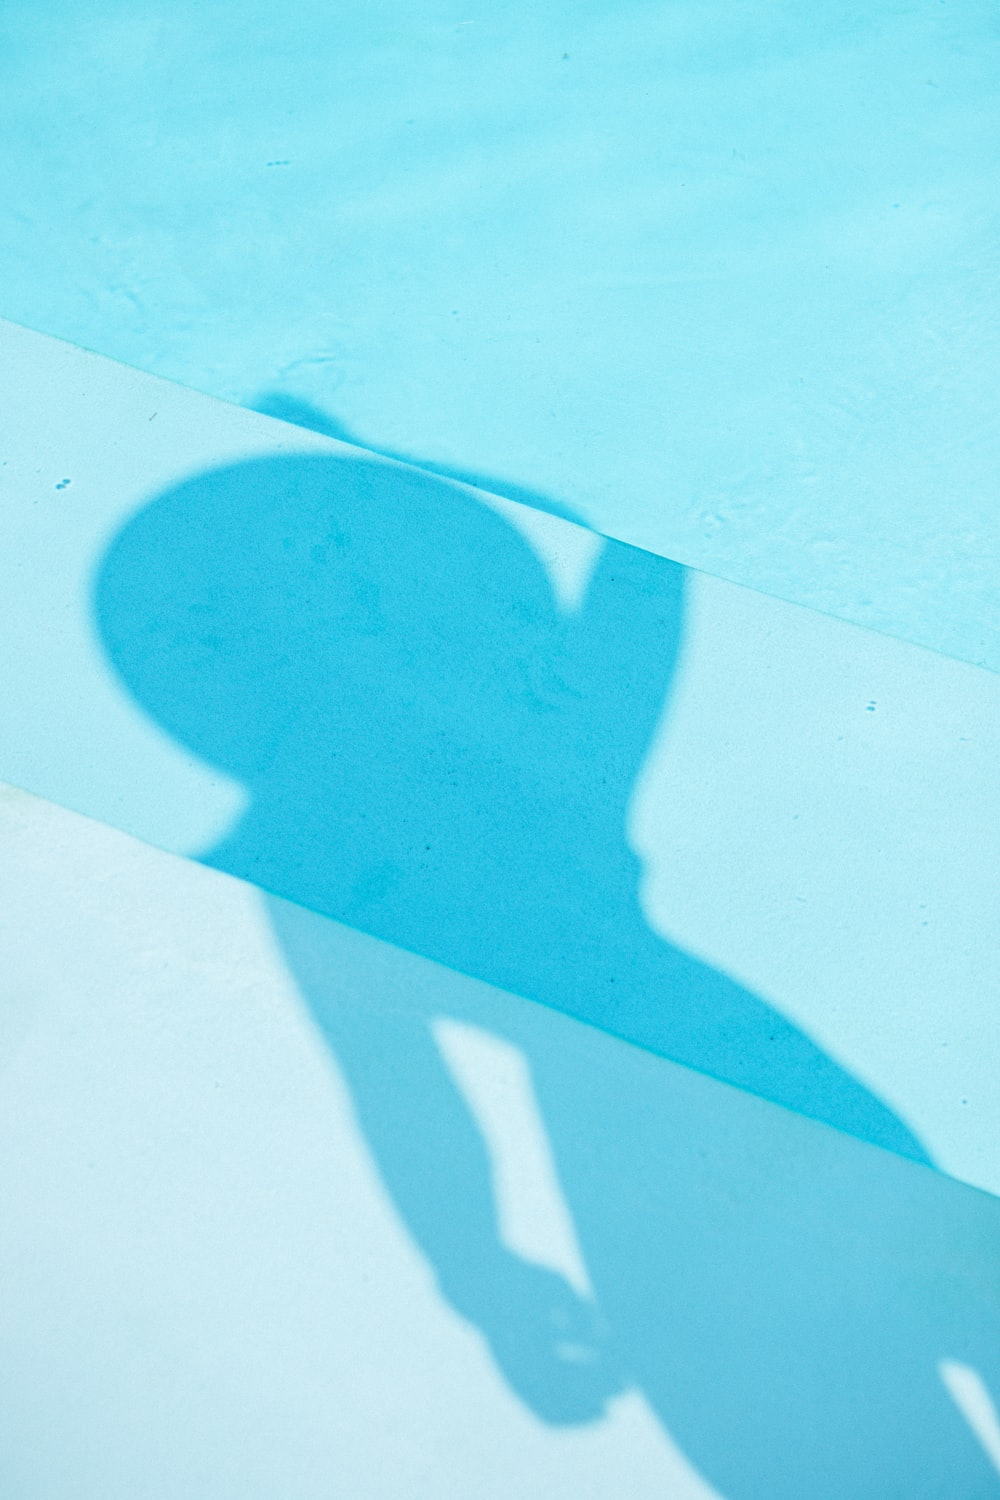 shadow of person on white sand